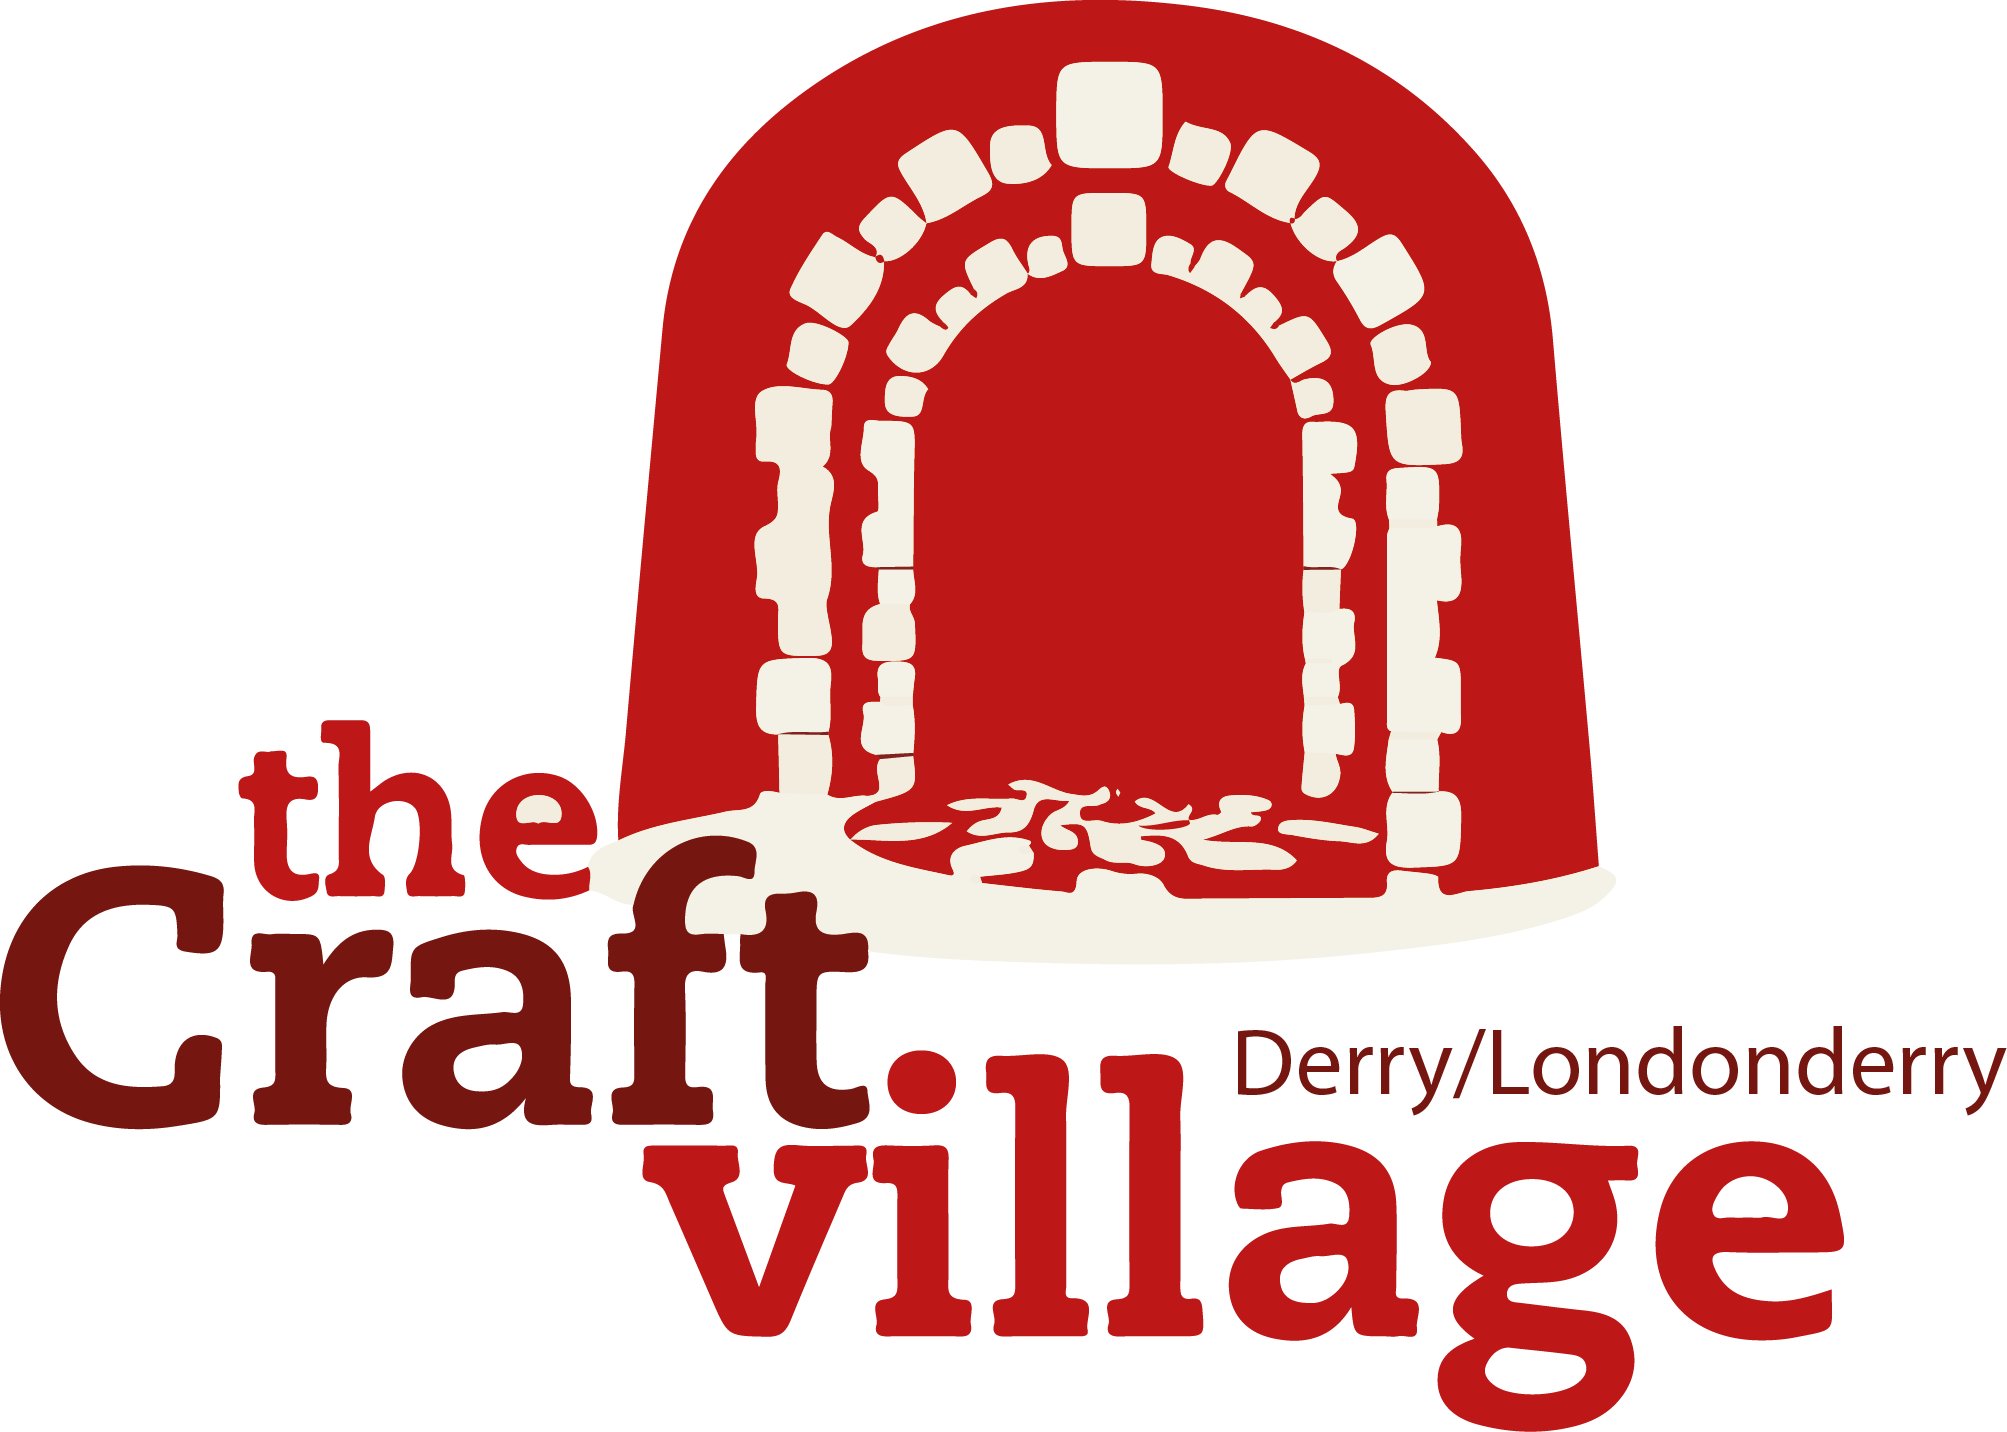 DerryCraftVillage